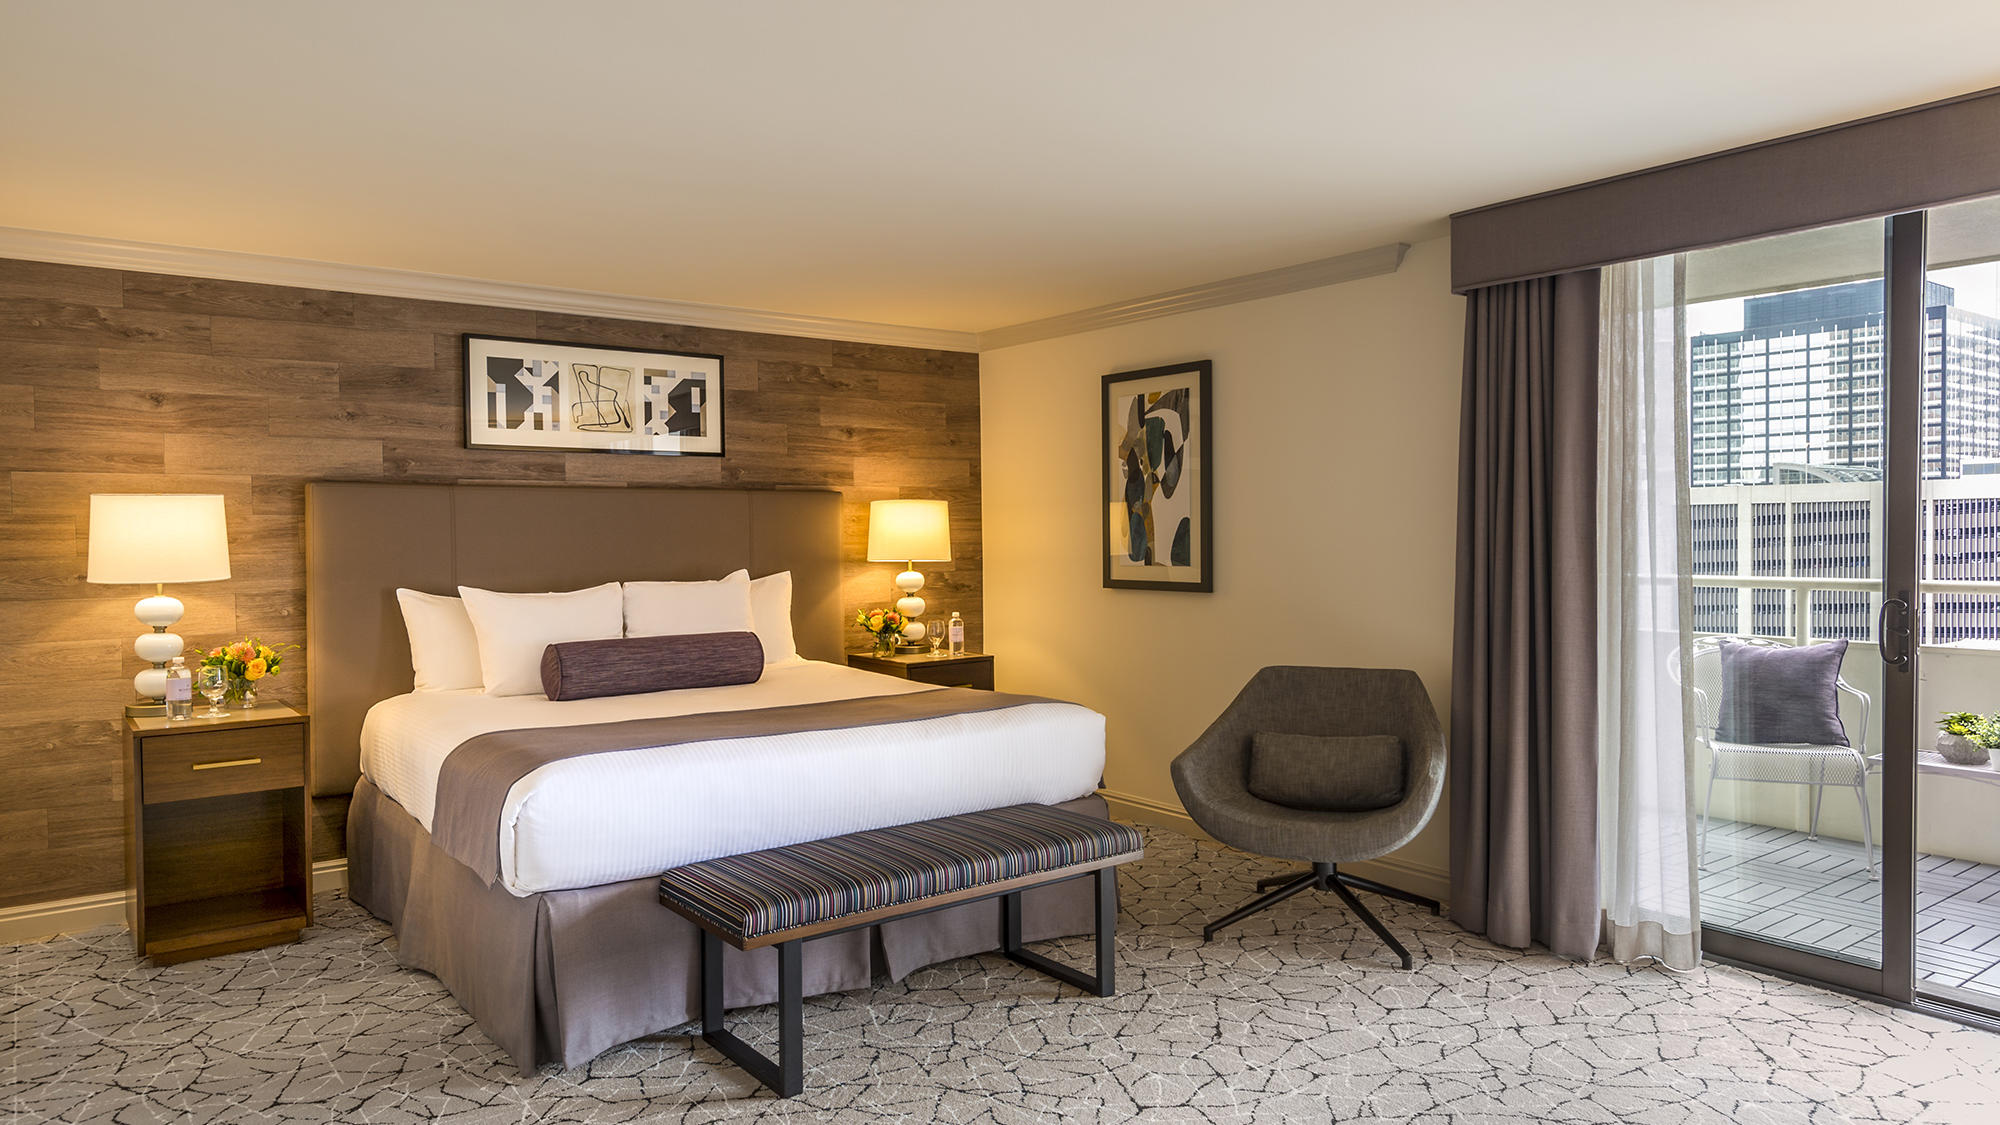 Accessible Classic Rooms offer details